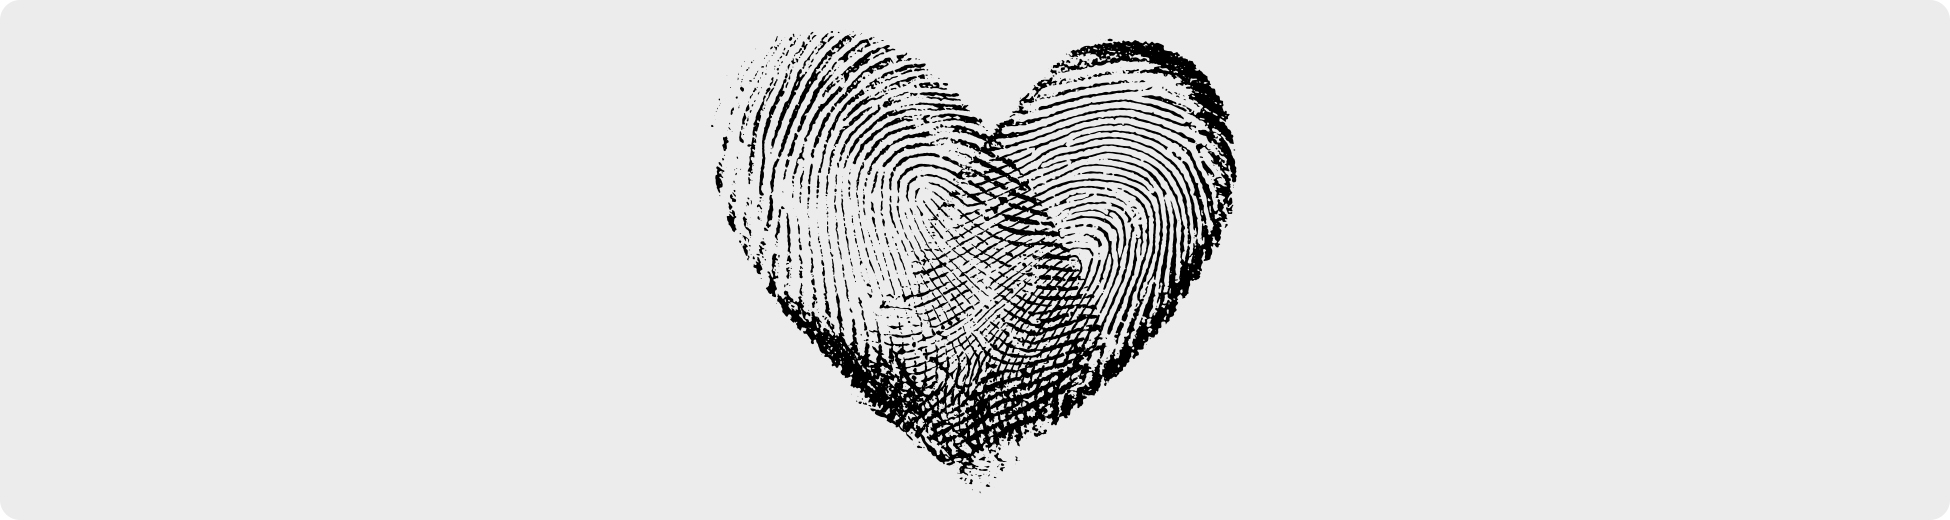 Heart Shaped Fingerprint Design